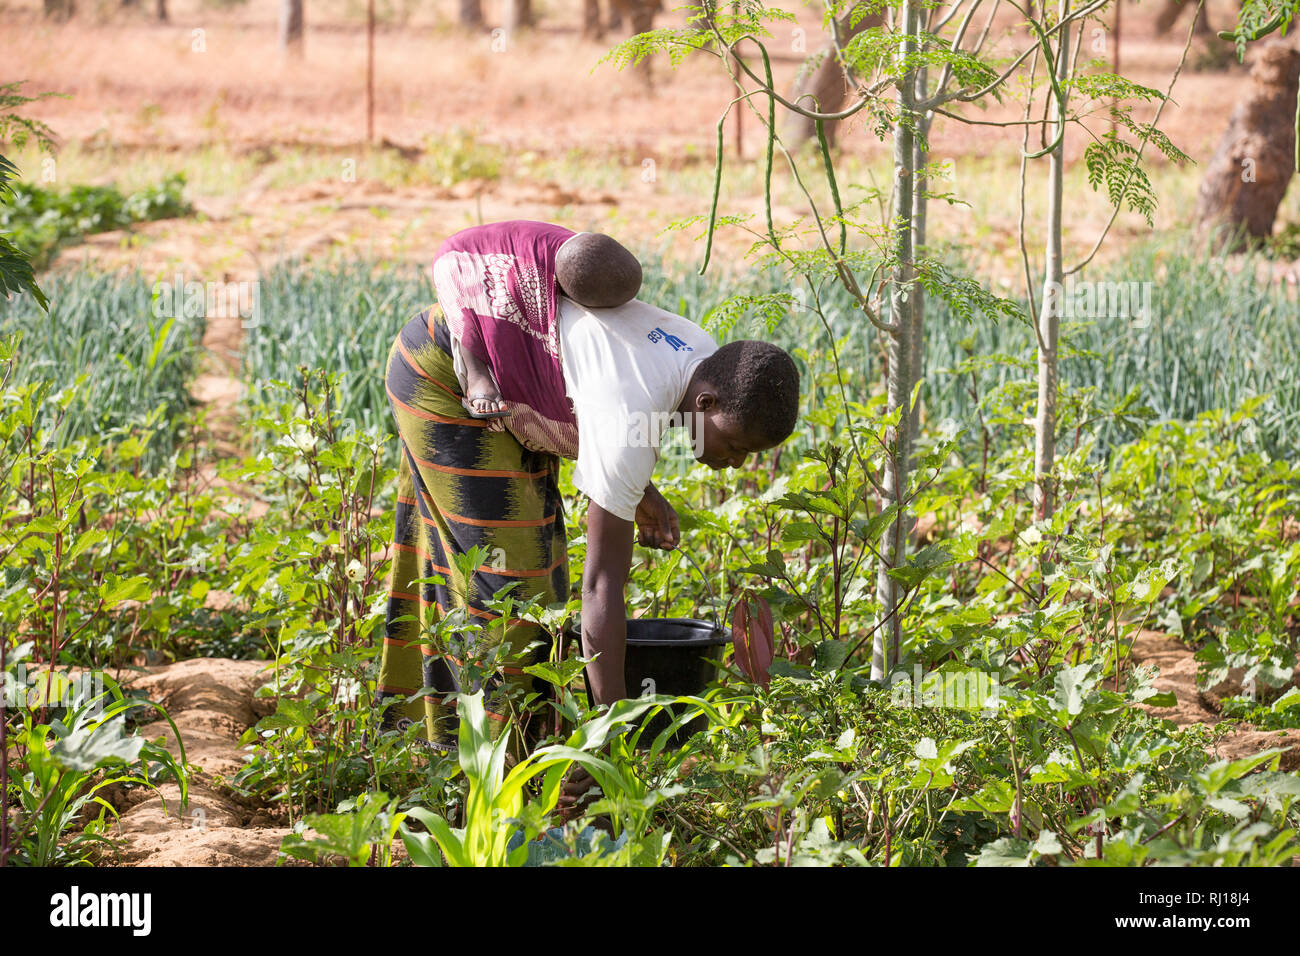 Samba village, Yako Province, Burkina Faso : Collette Guiguemde working in her husband's market garden, harvesting okra. Stock Photo